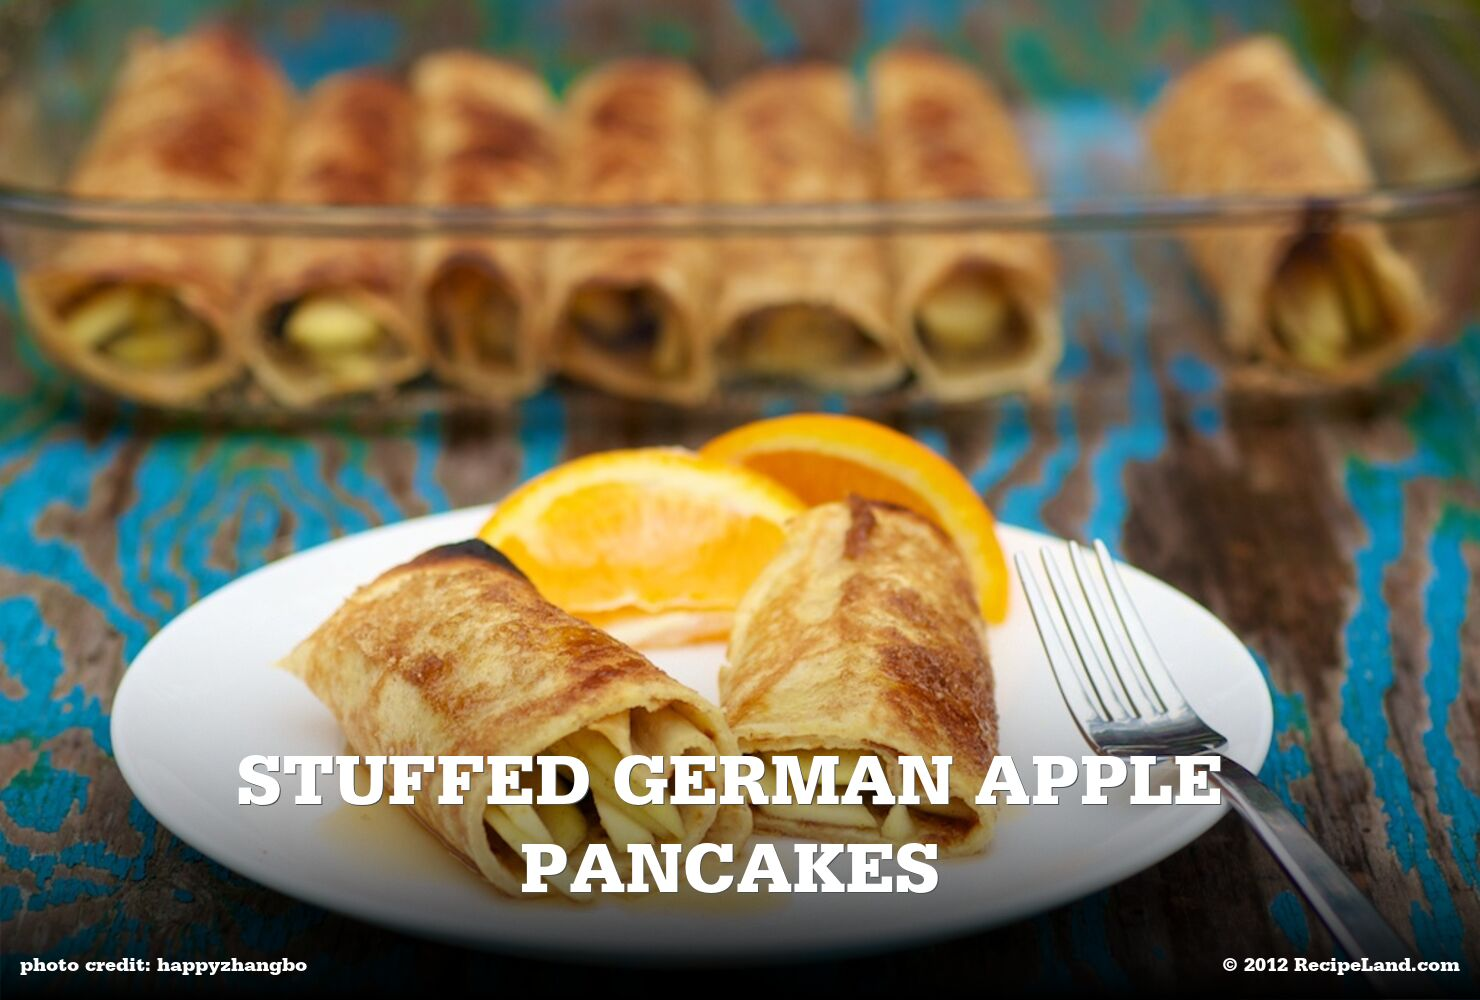 Stuffed German Apple Pancakes